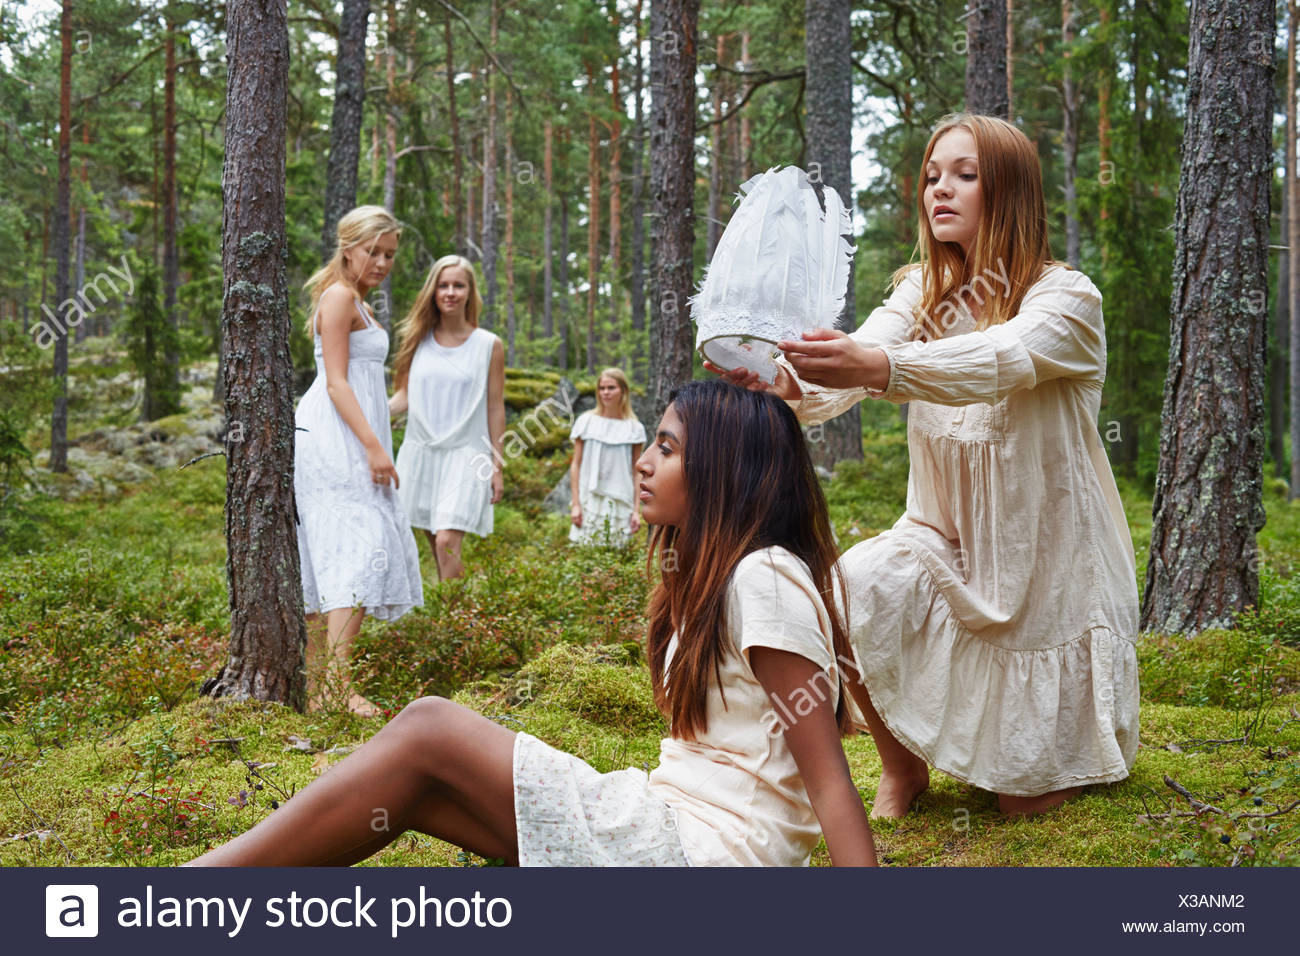 Teenage girl putting white hat on friend in forest - Stock Image